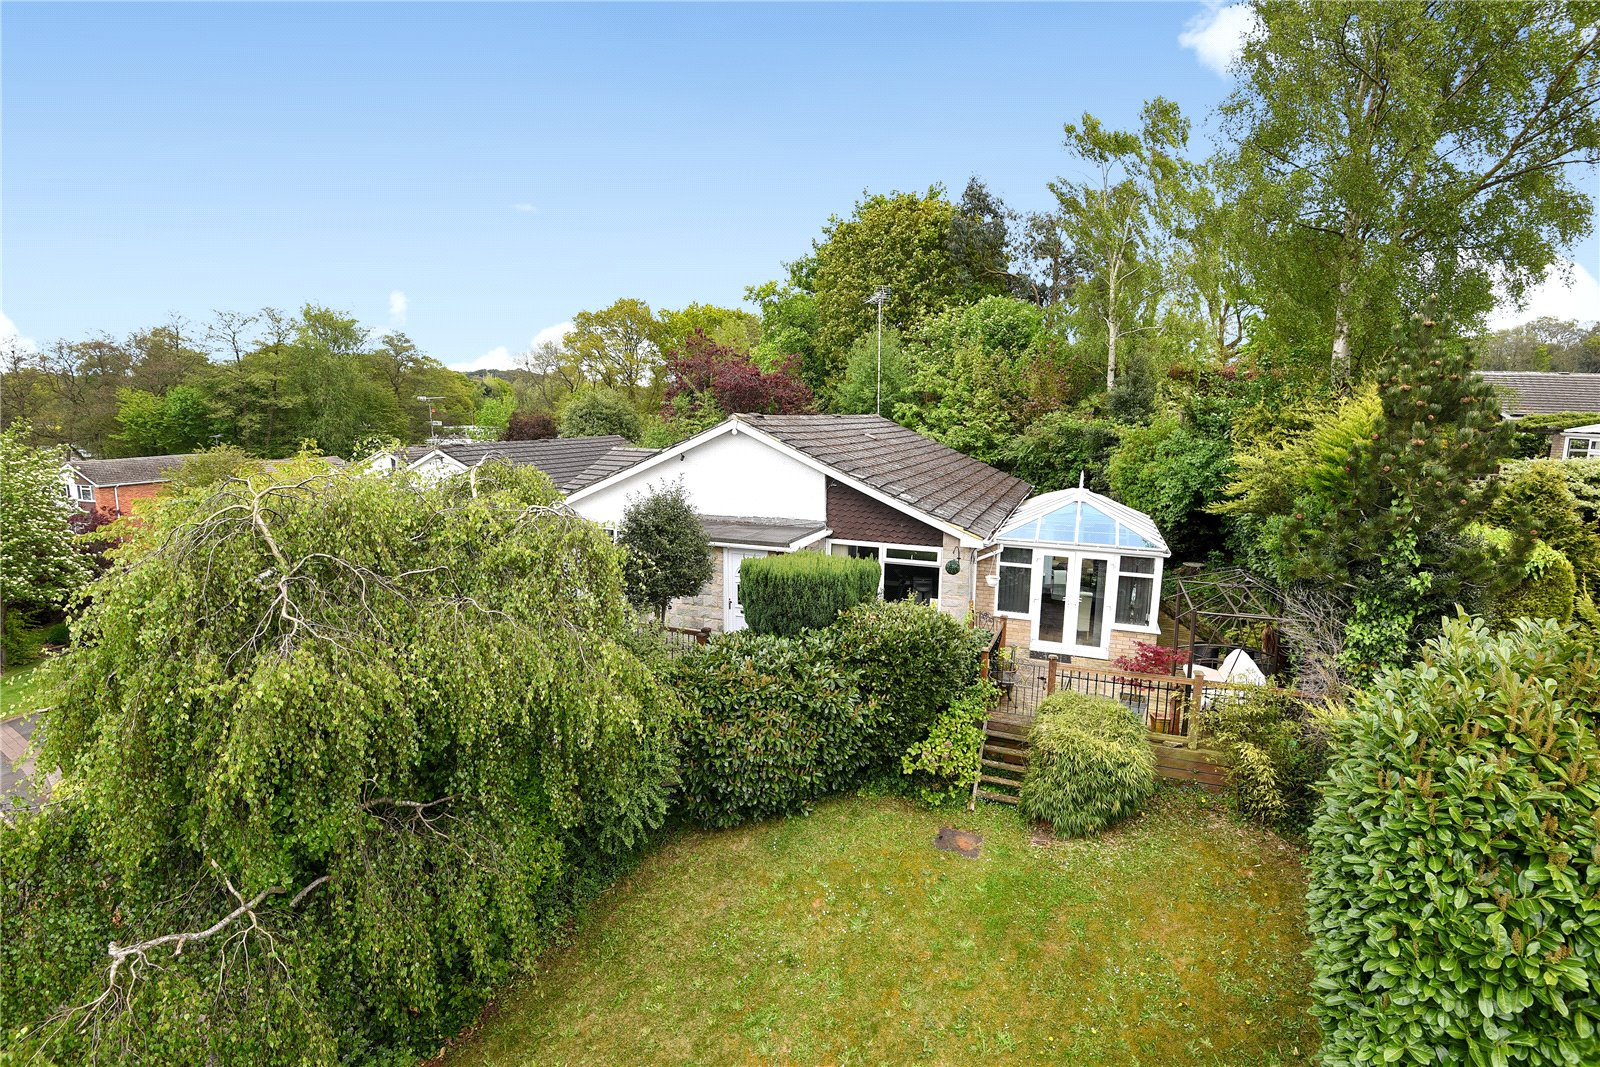 4 Bedrooms Detached Bungalow for sale in Alphington Avenue, Frimley, Camberley, Surrey, GU16